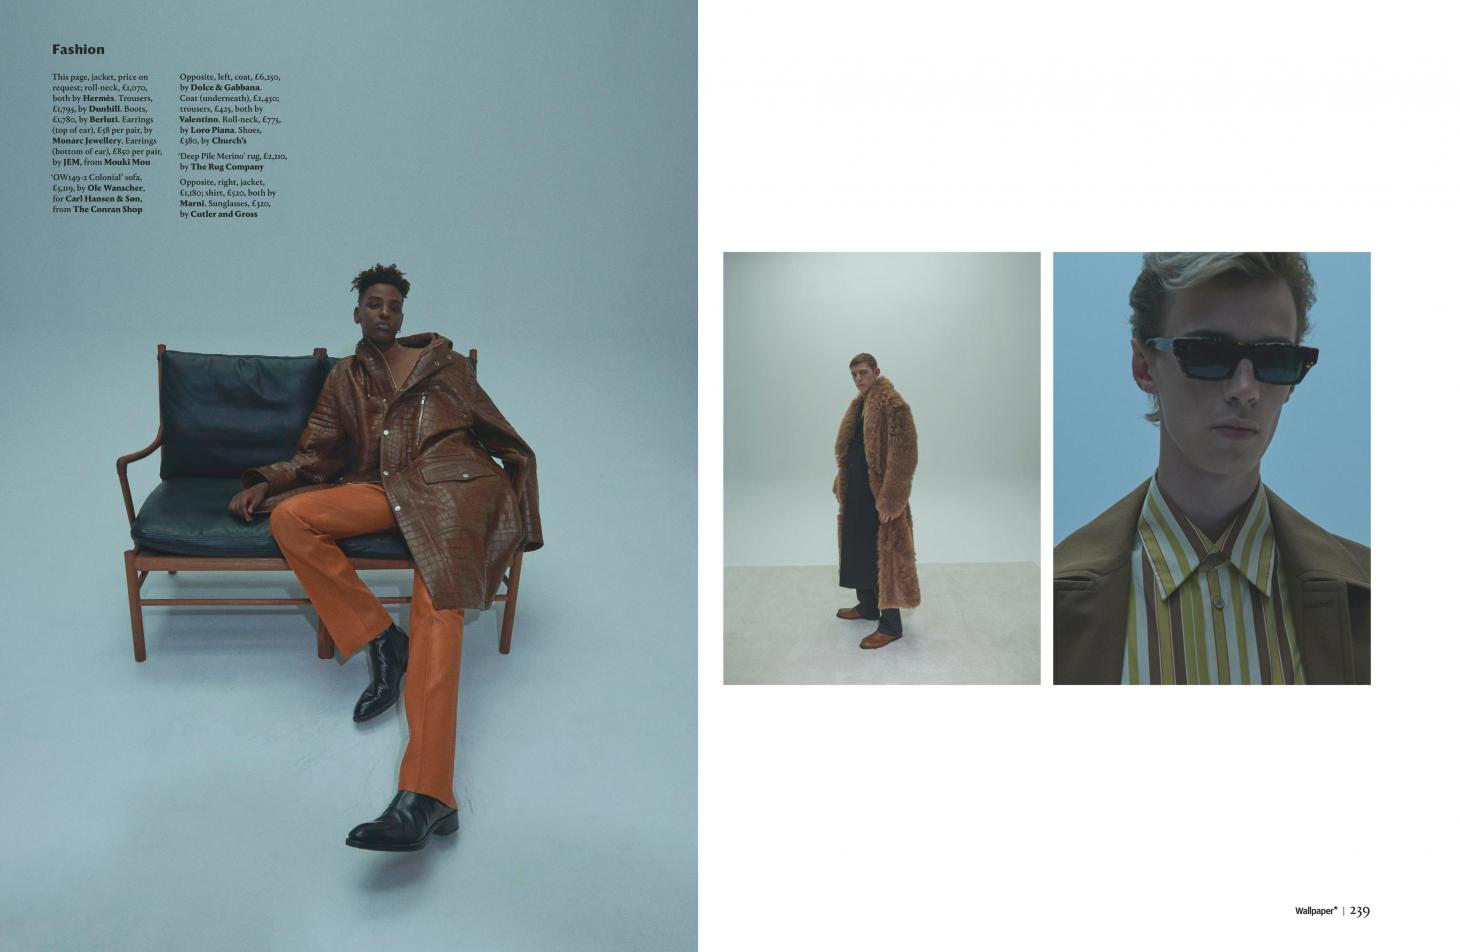 Jibriil Ollow in brown leather coat by Sofie Middernacht and Maarten Alexander